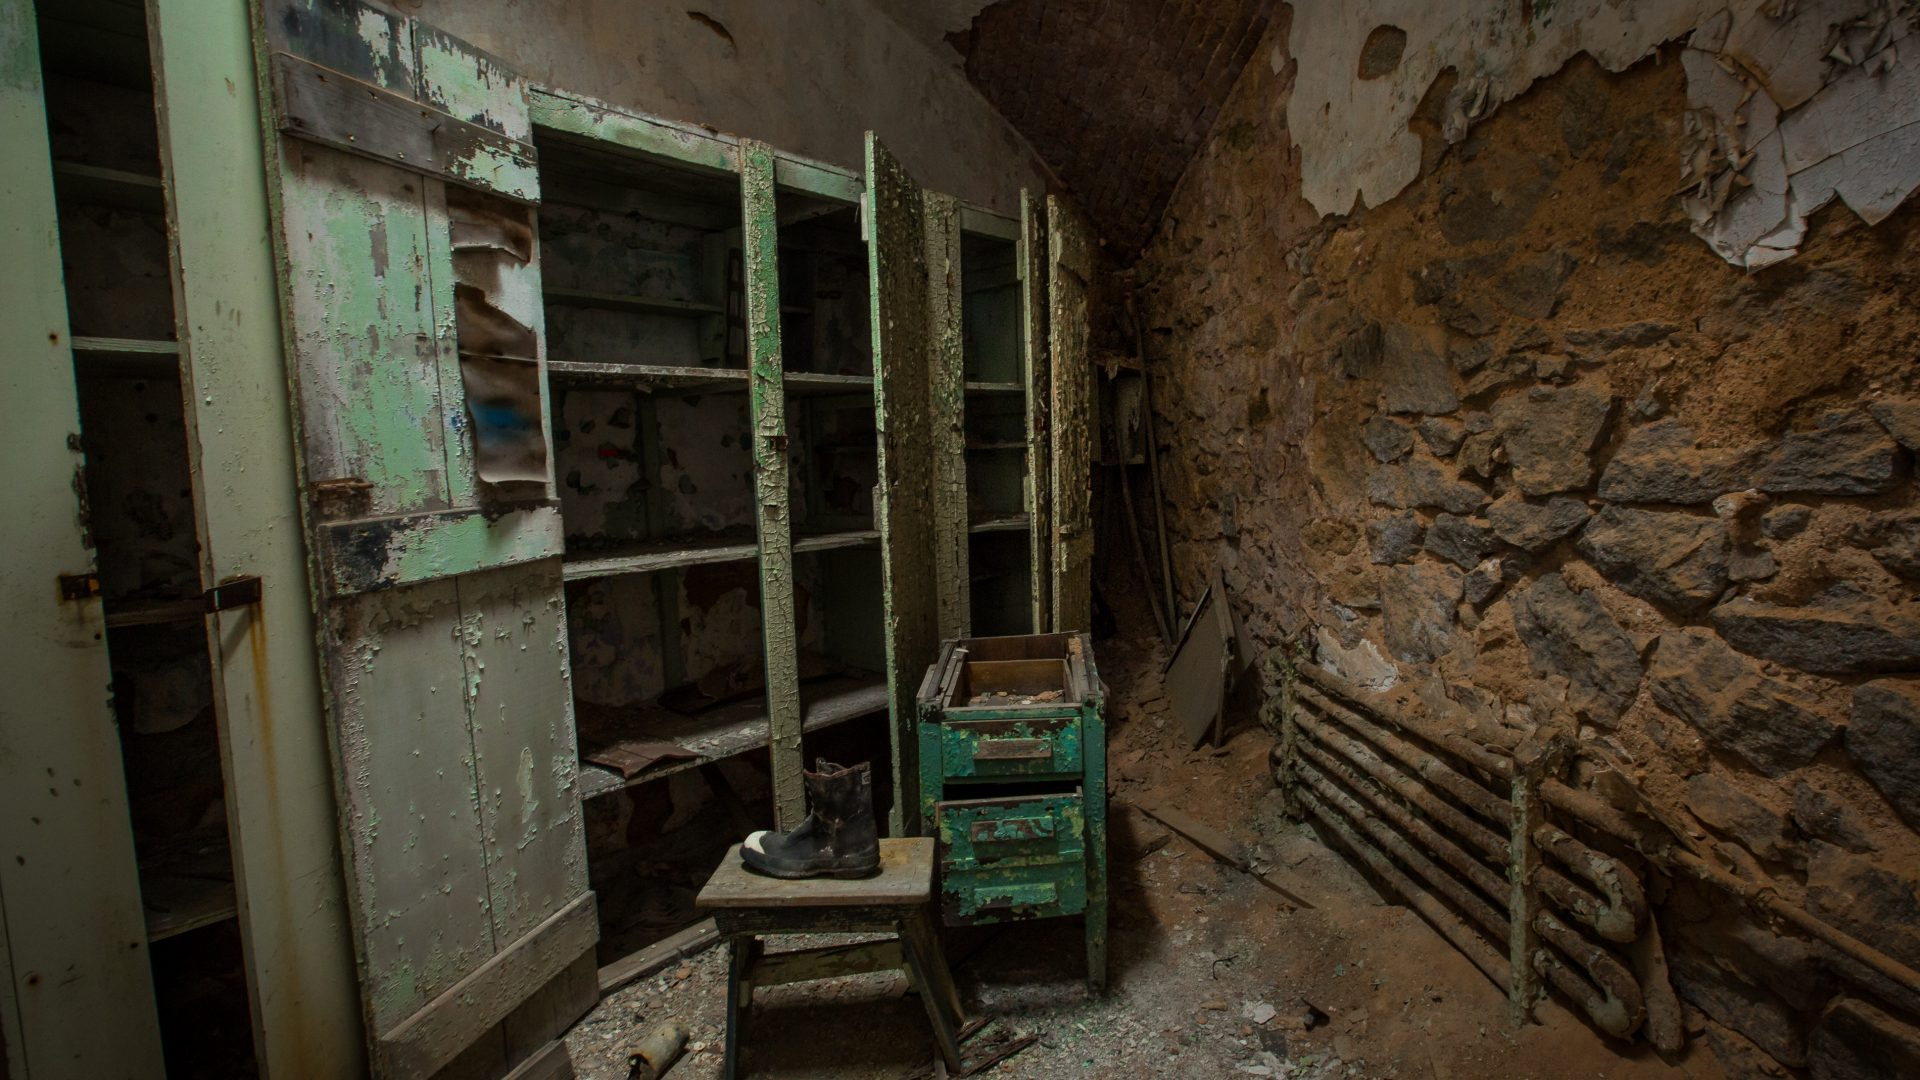 It's easy to understand why there are claims the Eastern State Penitentiary is haunted.